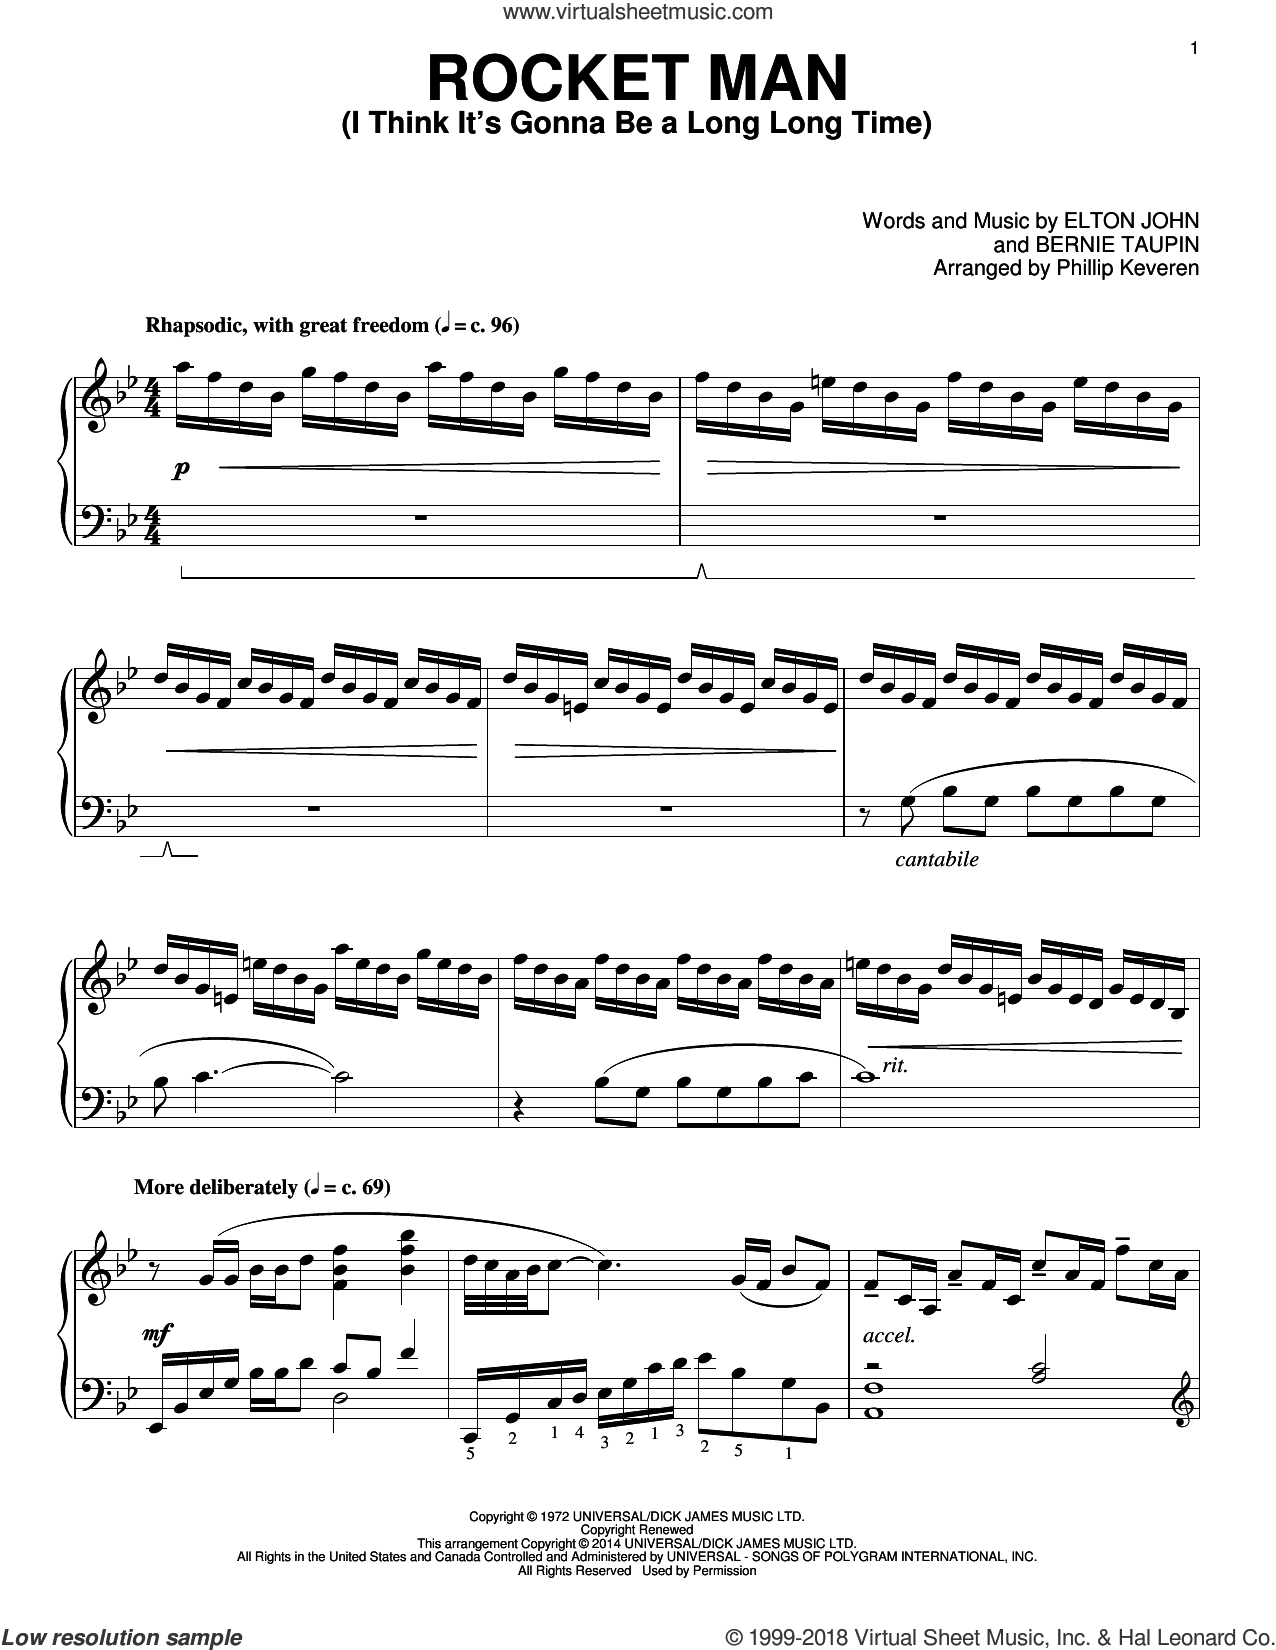 Rocket Man (I Think It's Gonna Be A Long Long Time) sheet music for piano solo by Phillip Keveren, Bernie Taupin and Elton John, intermediate skill level